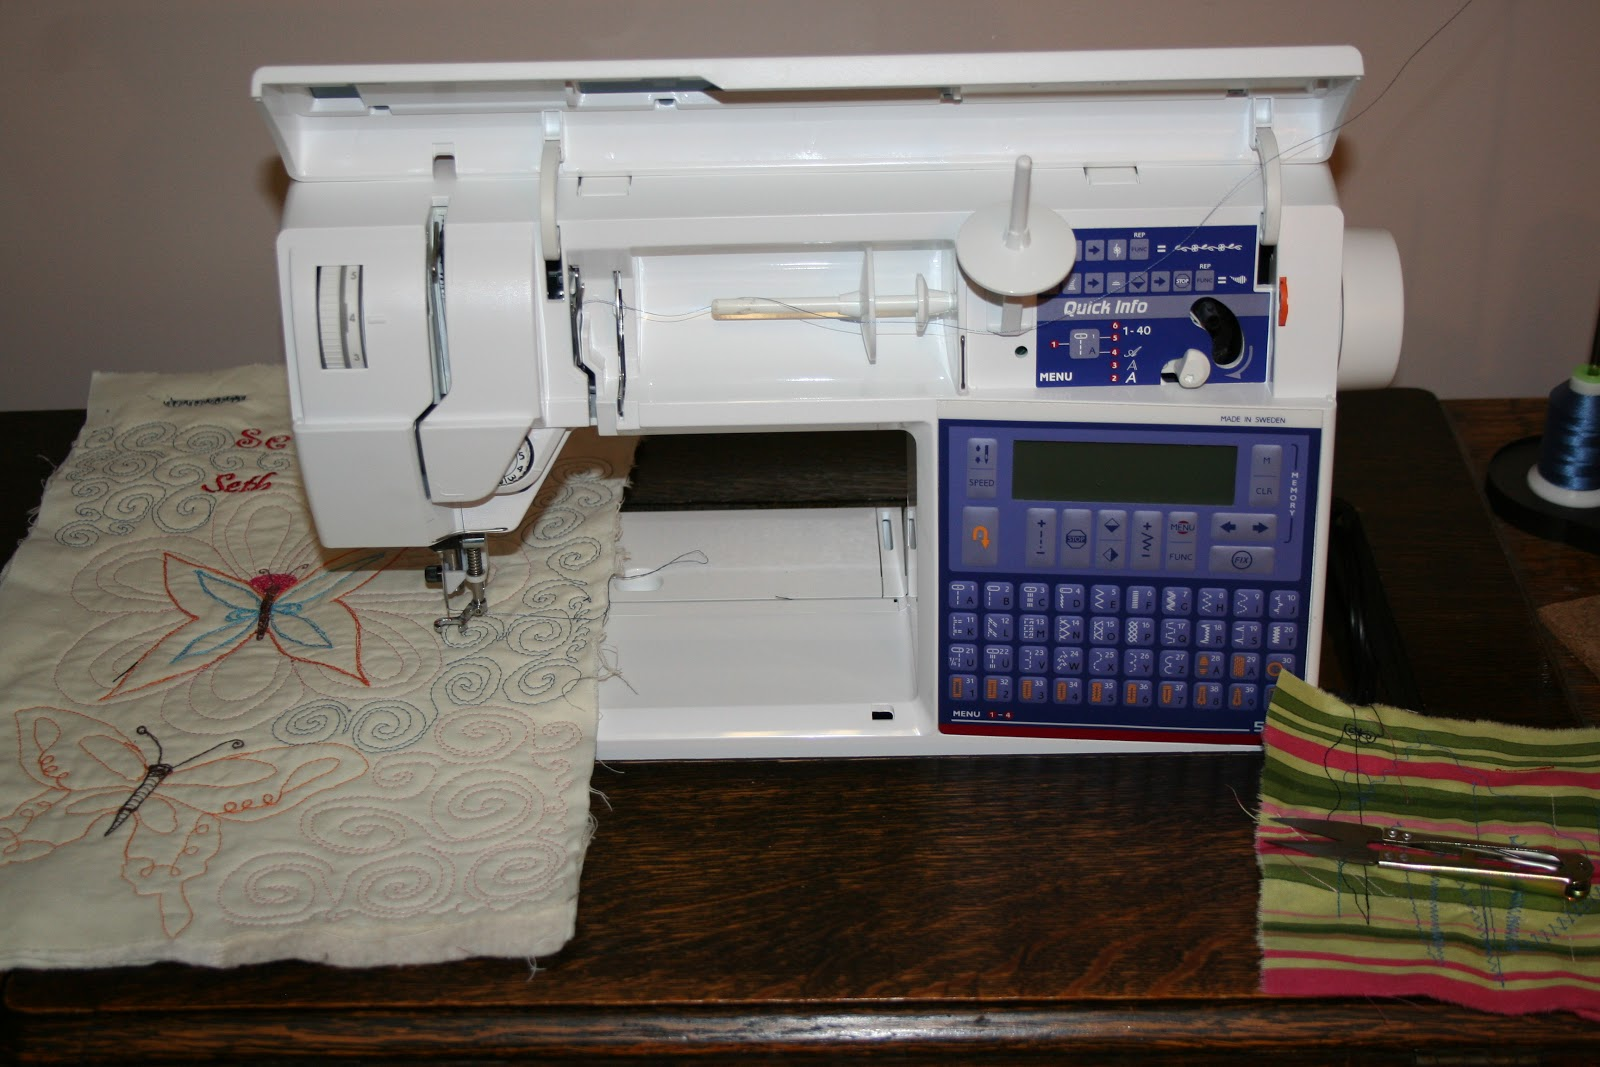 husqvarna 400 computer sewing machine manual